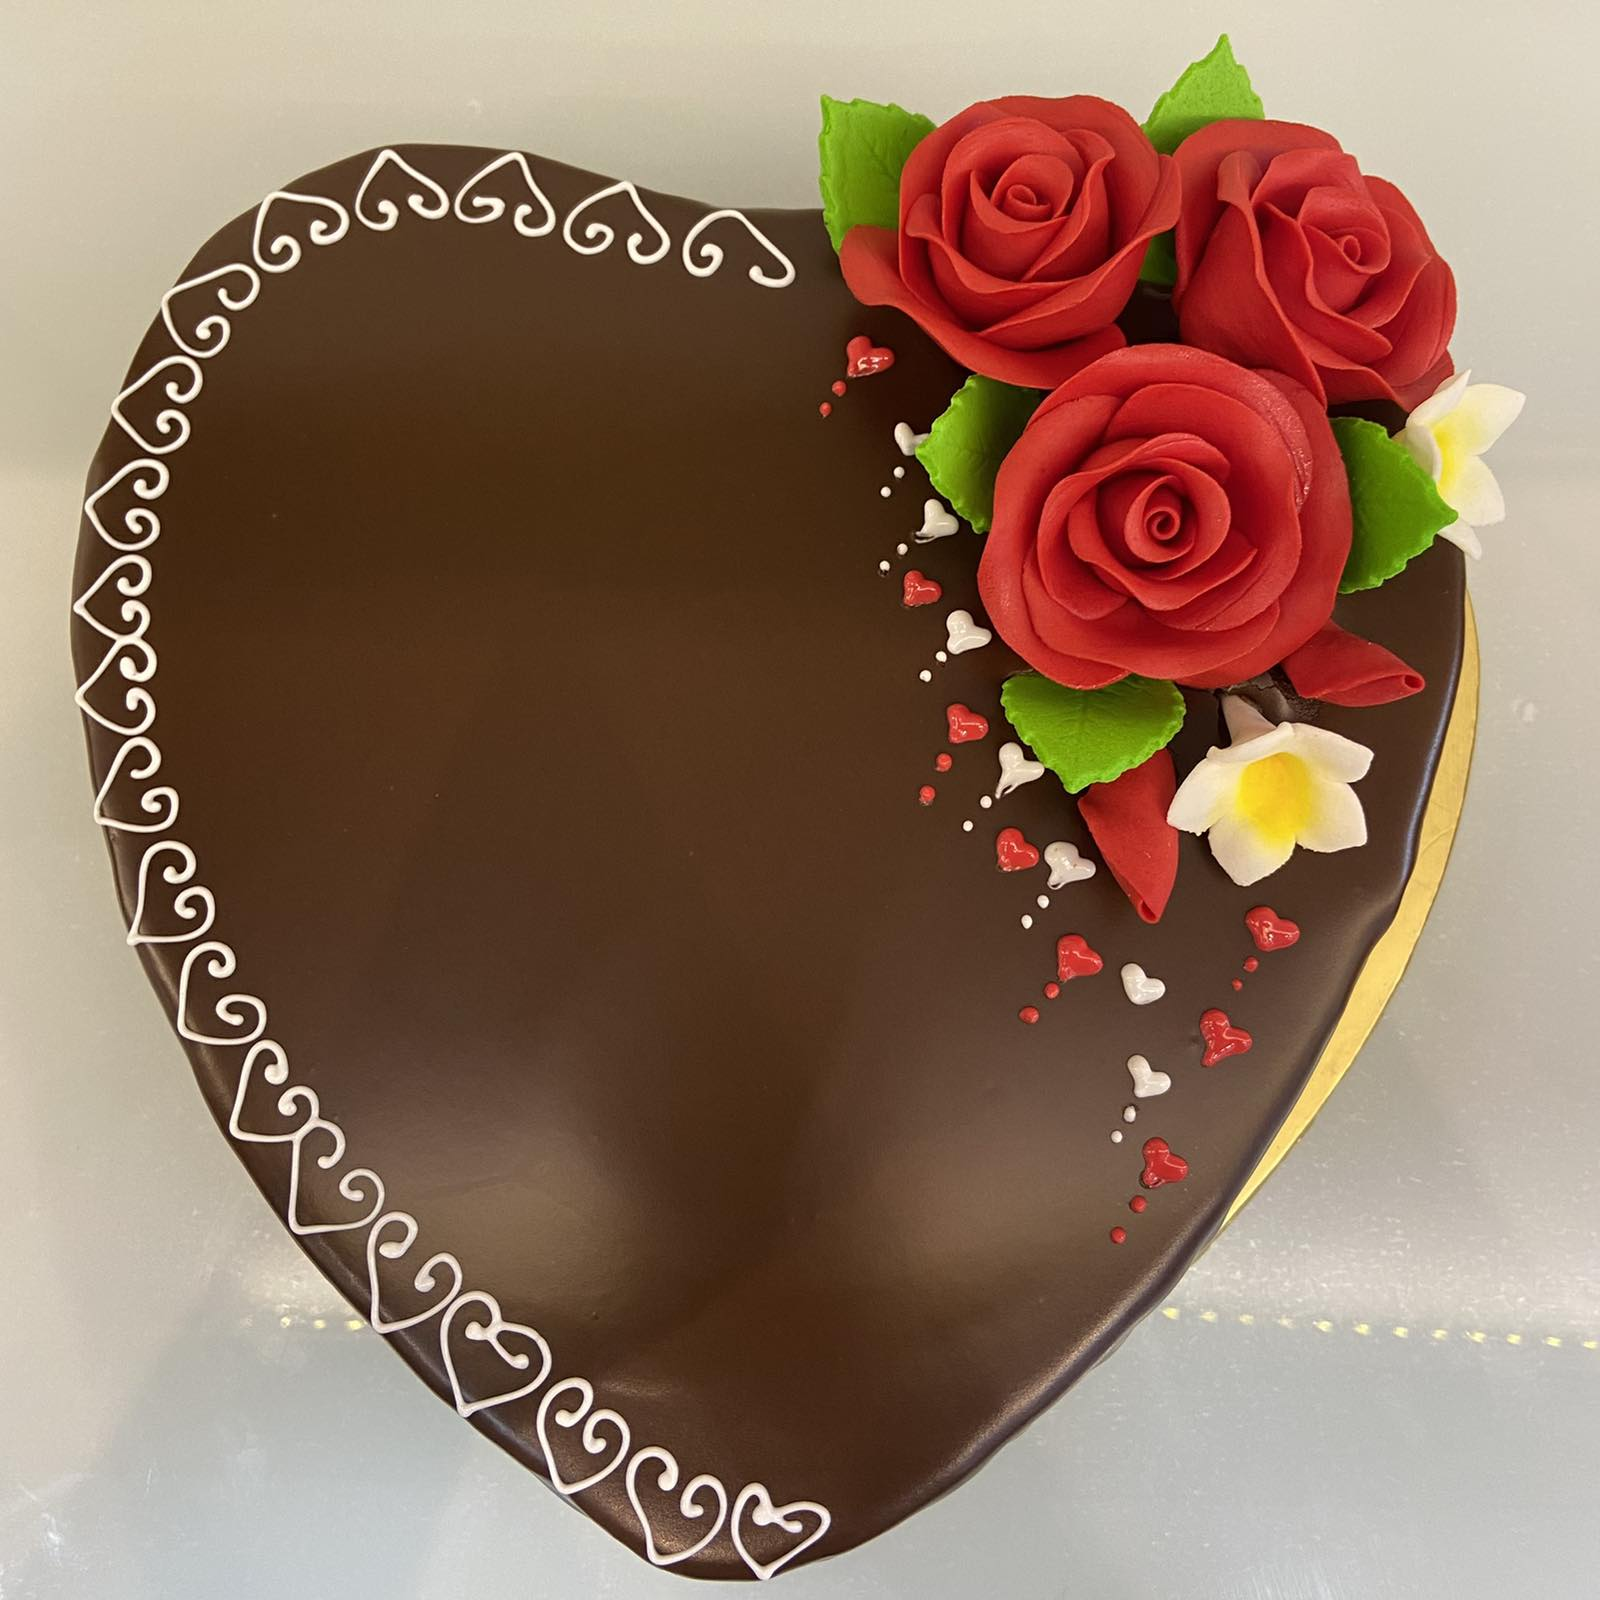 Heart Shaped Chocolate Cake